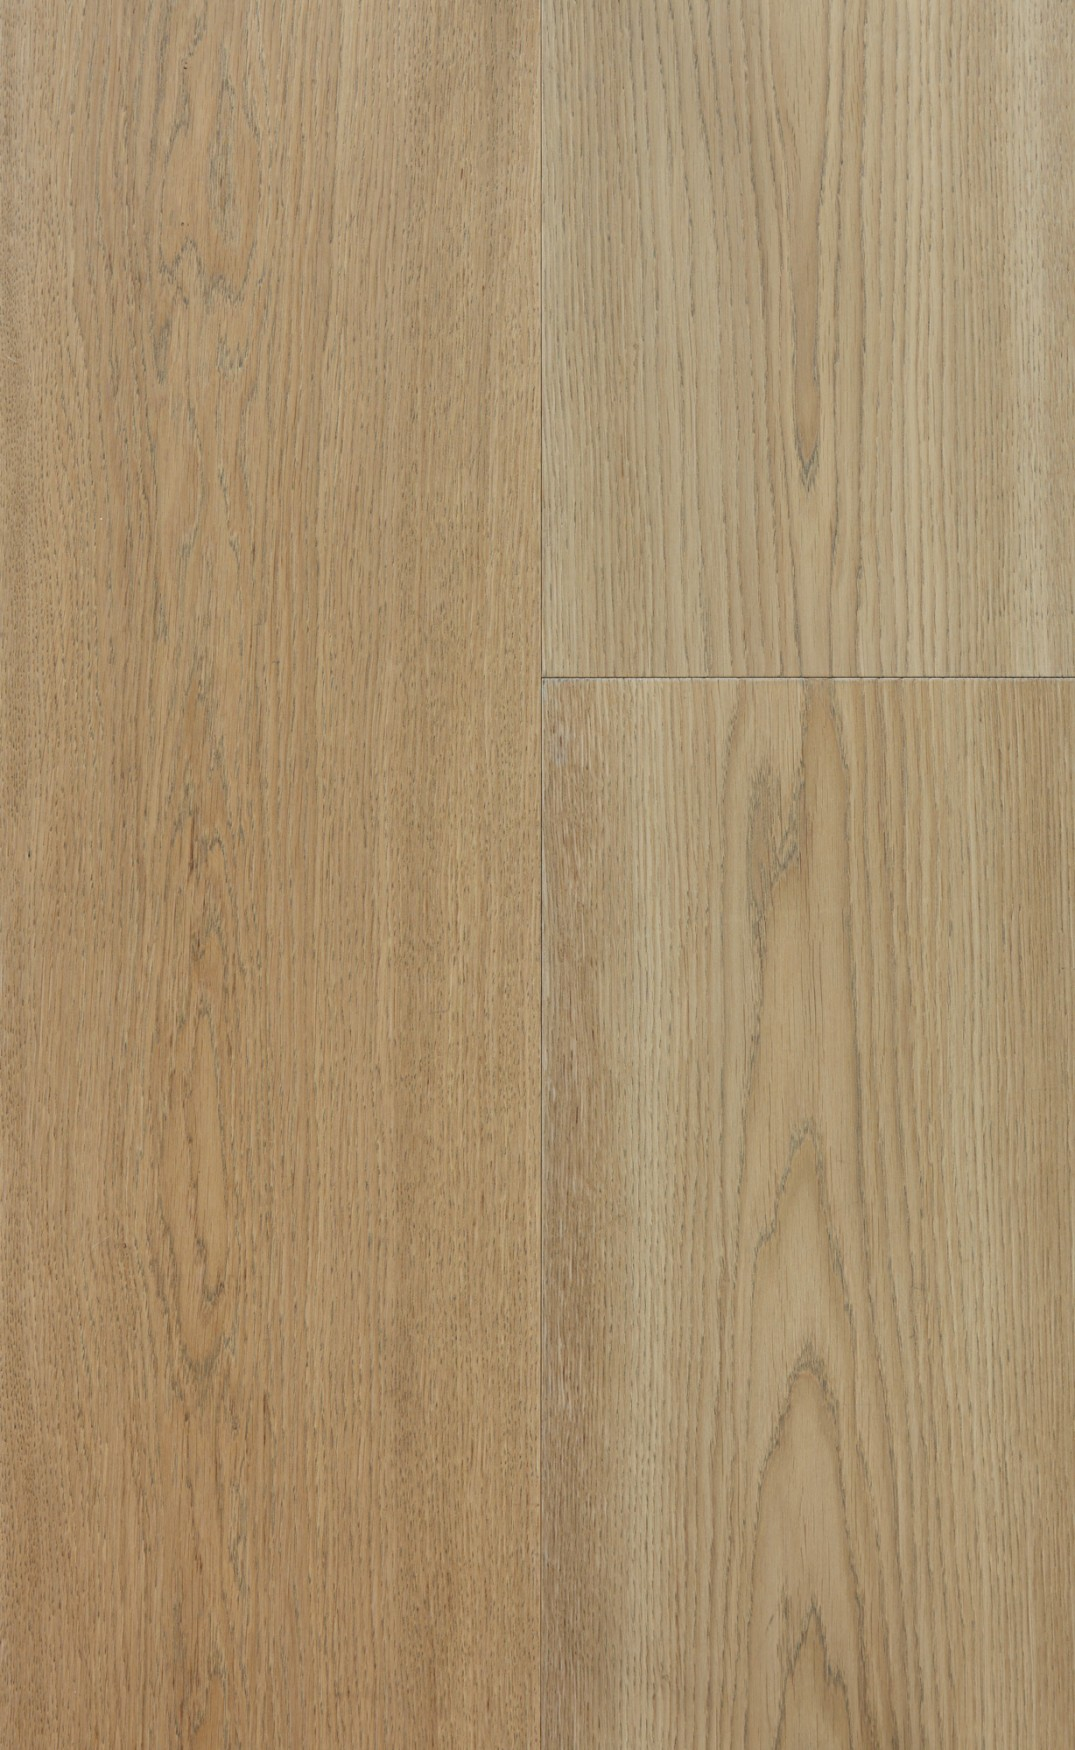 Element7_CadoganOak_naturalOil_sanded_AJ_562_066-copy_